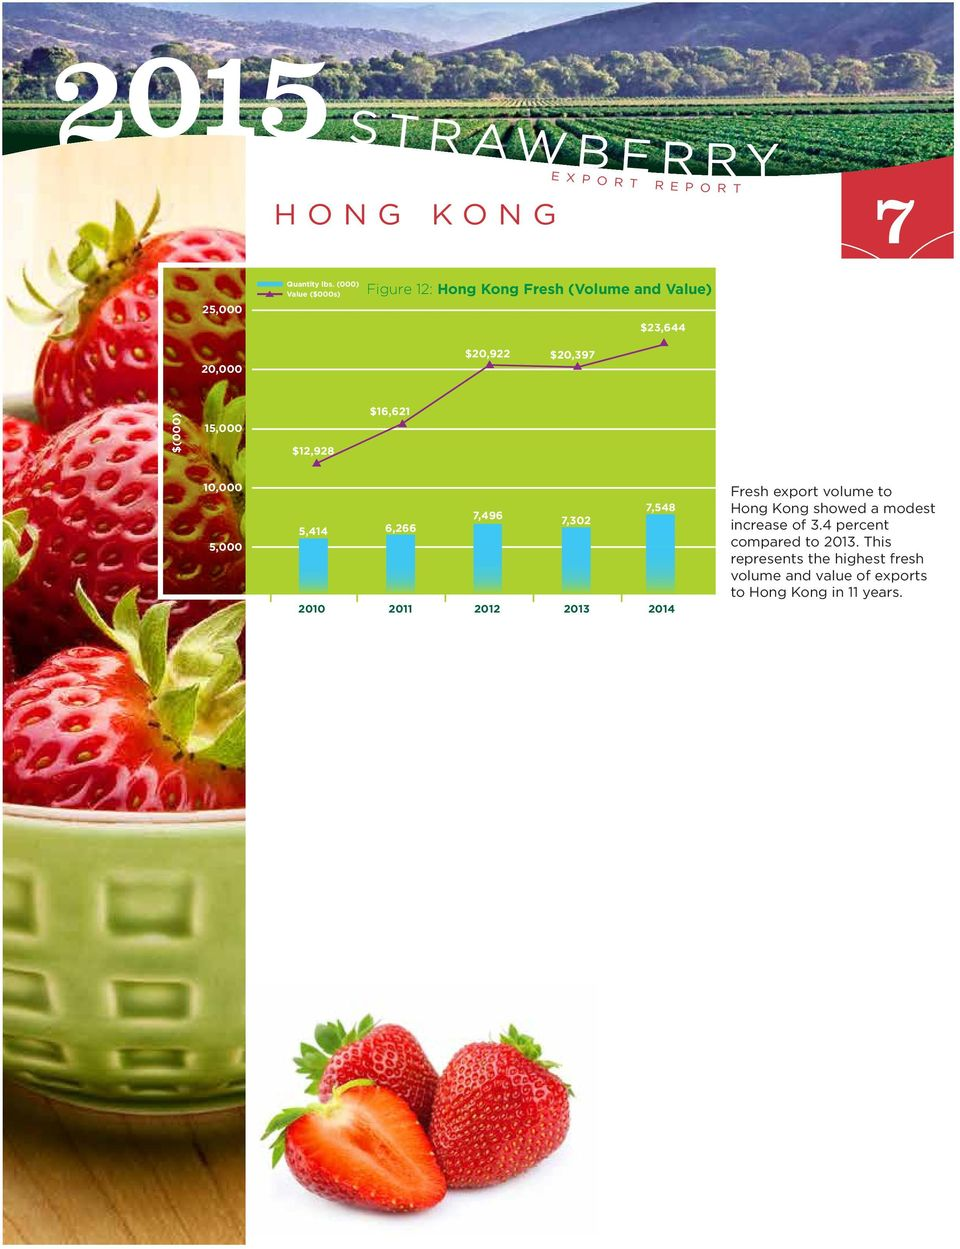 export volume to Hong Kong showed a modest increase of 3.